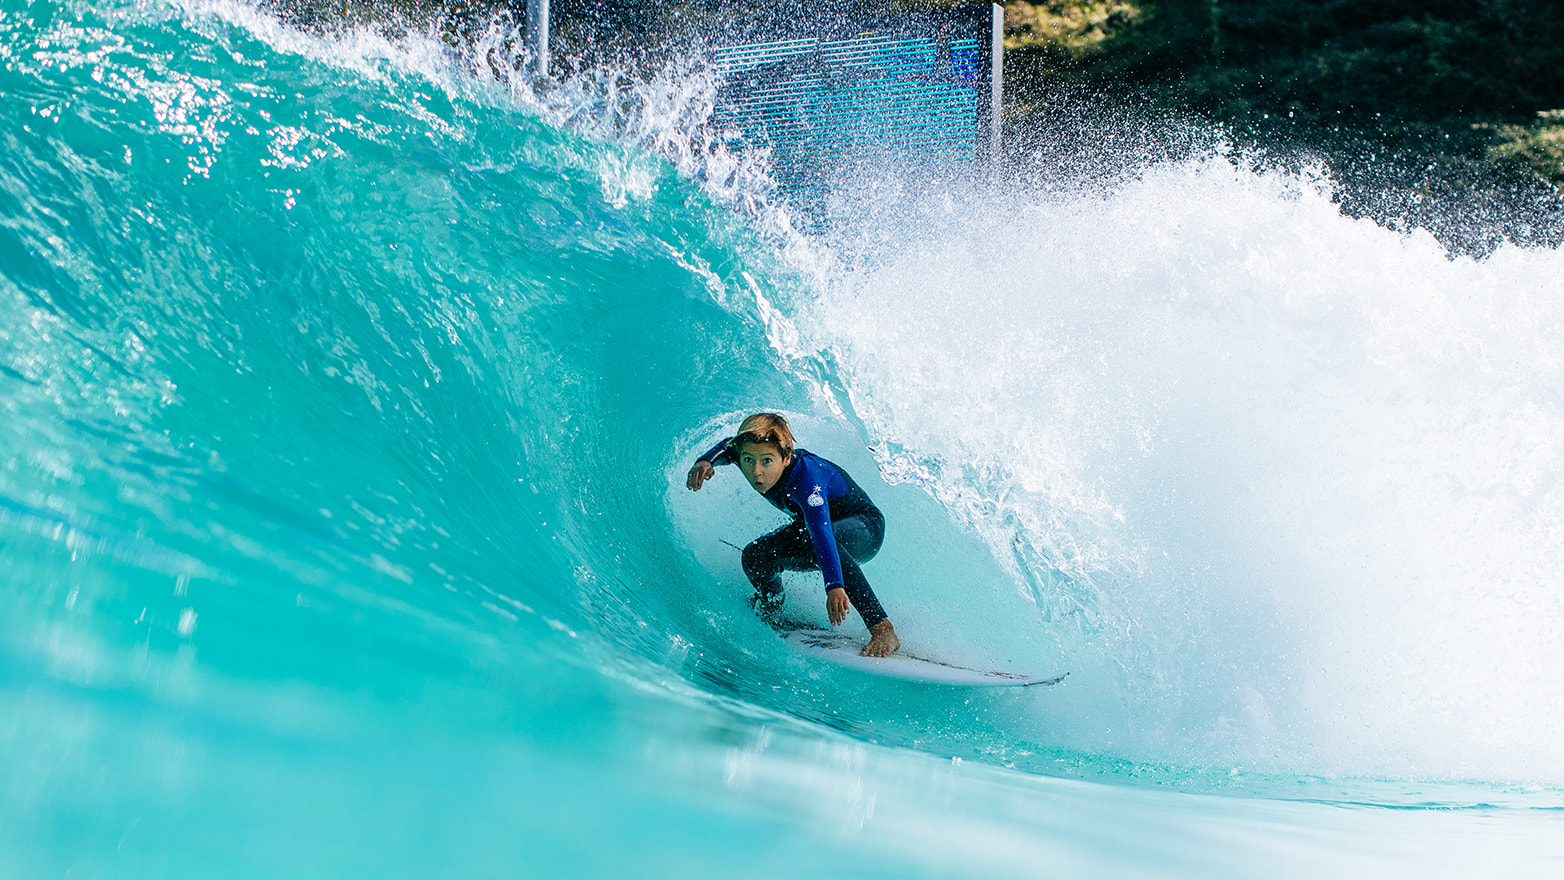 Hans Odriozola getting barreled in the Wavegarden Cove